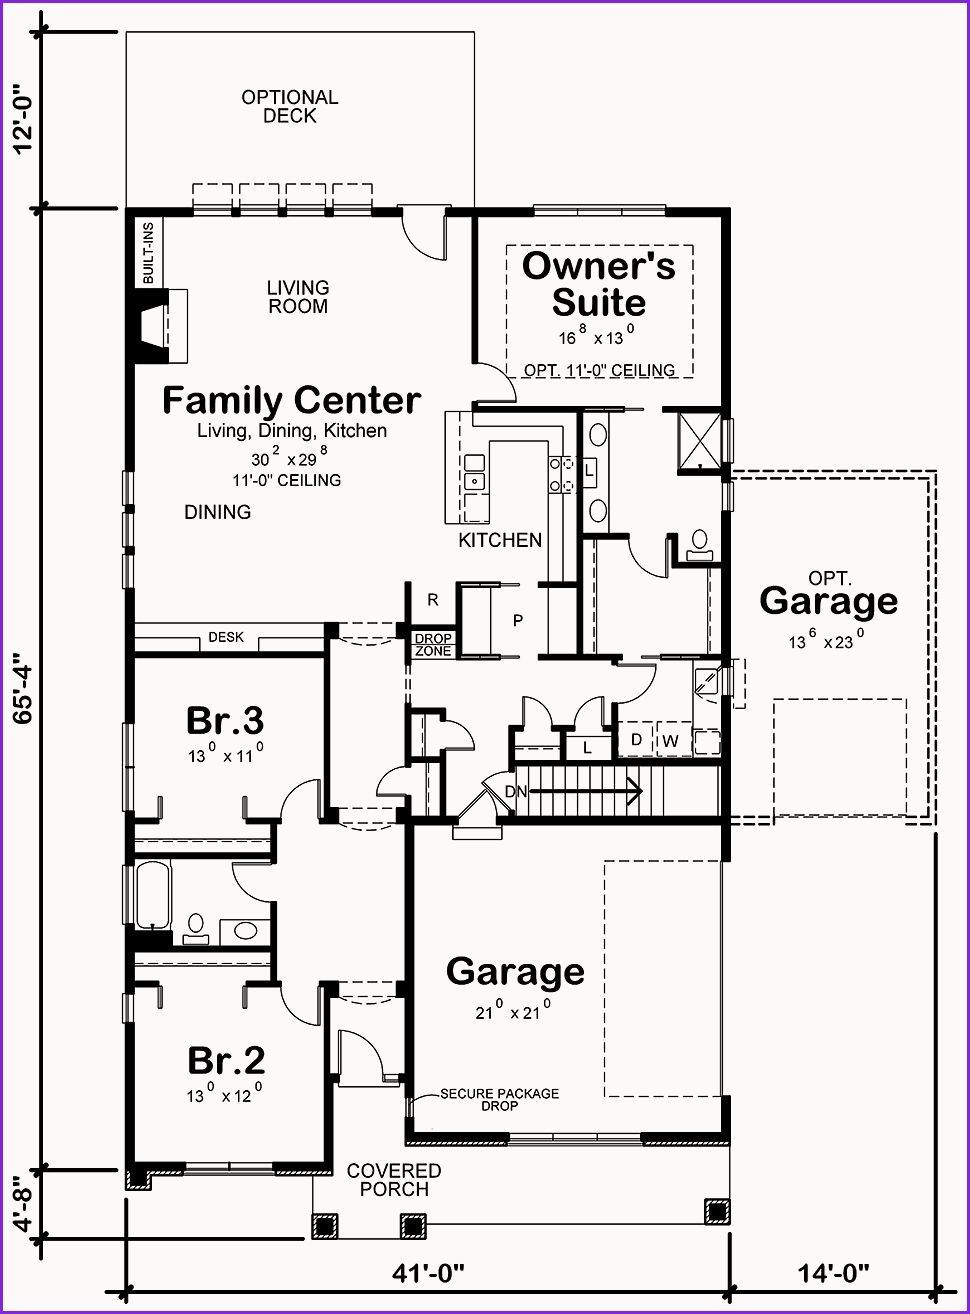 Lovely In Law House Plans 1 House Floor Plans With Mother In Law Suite Small House Floor Plans In Law House Basement House Plans